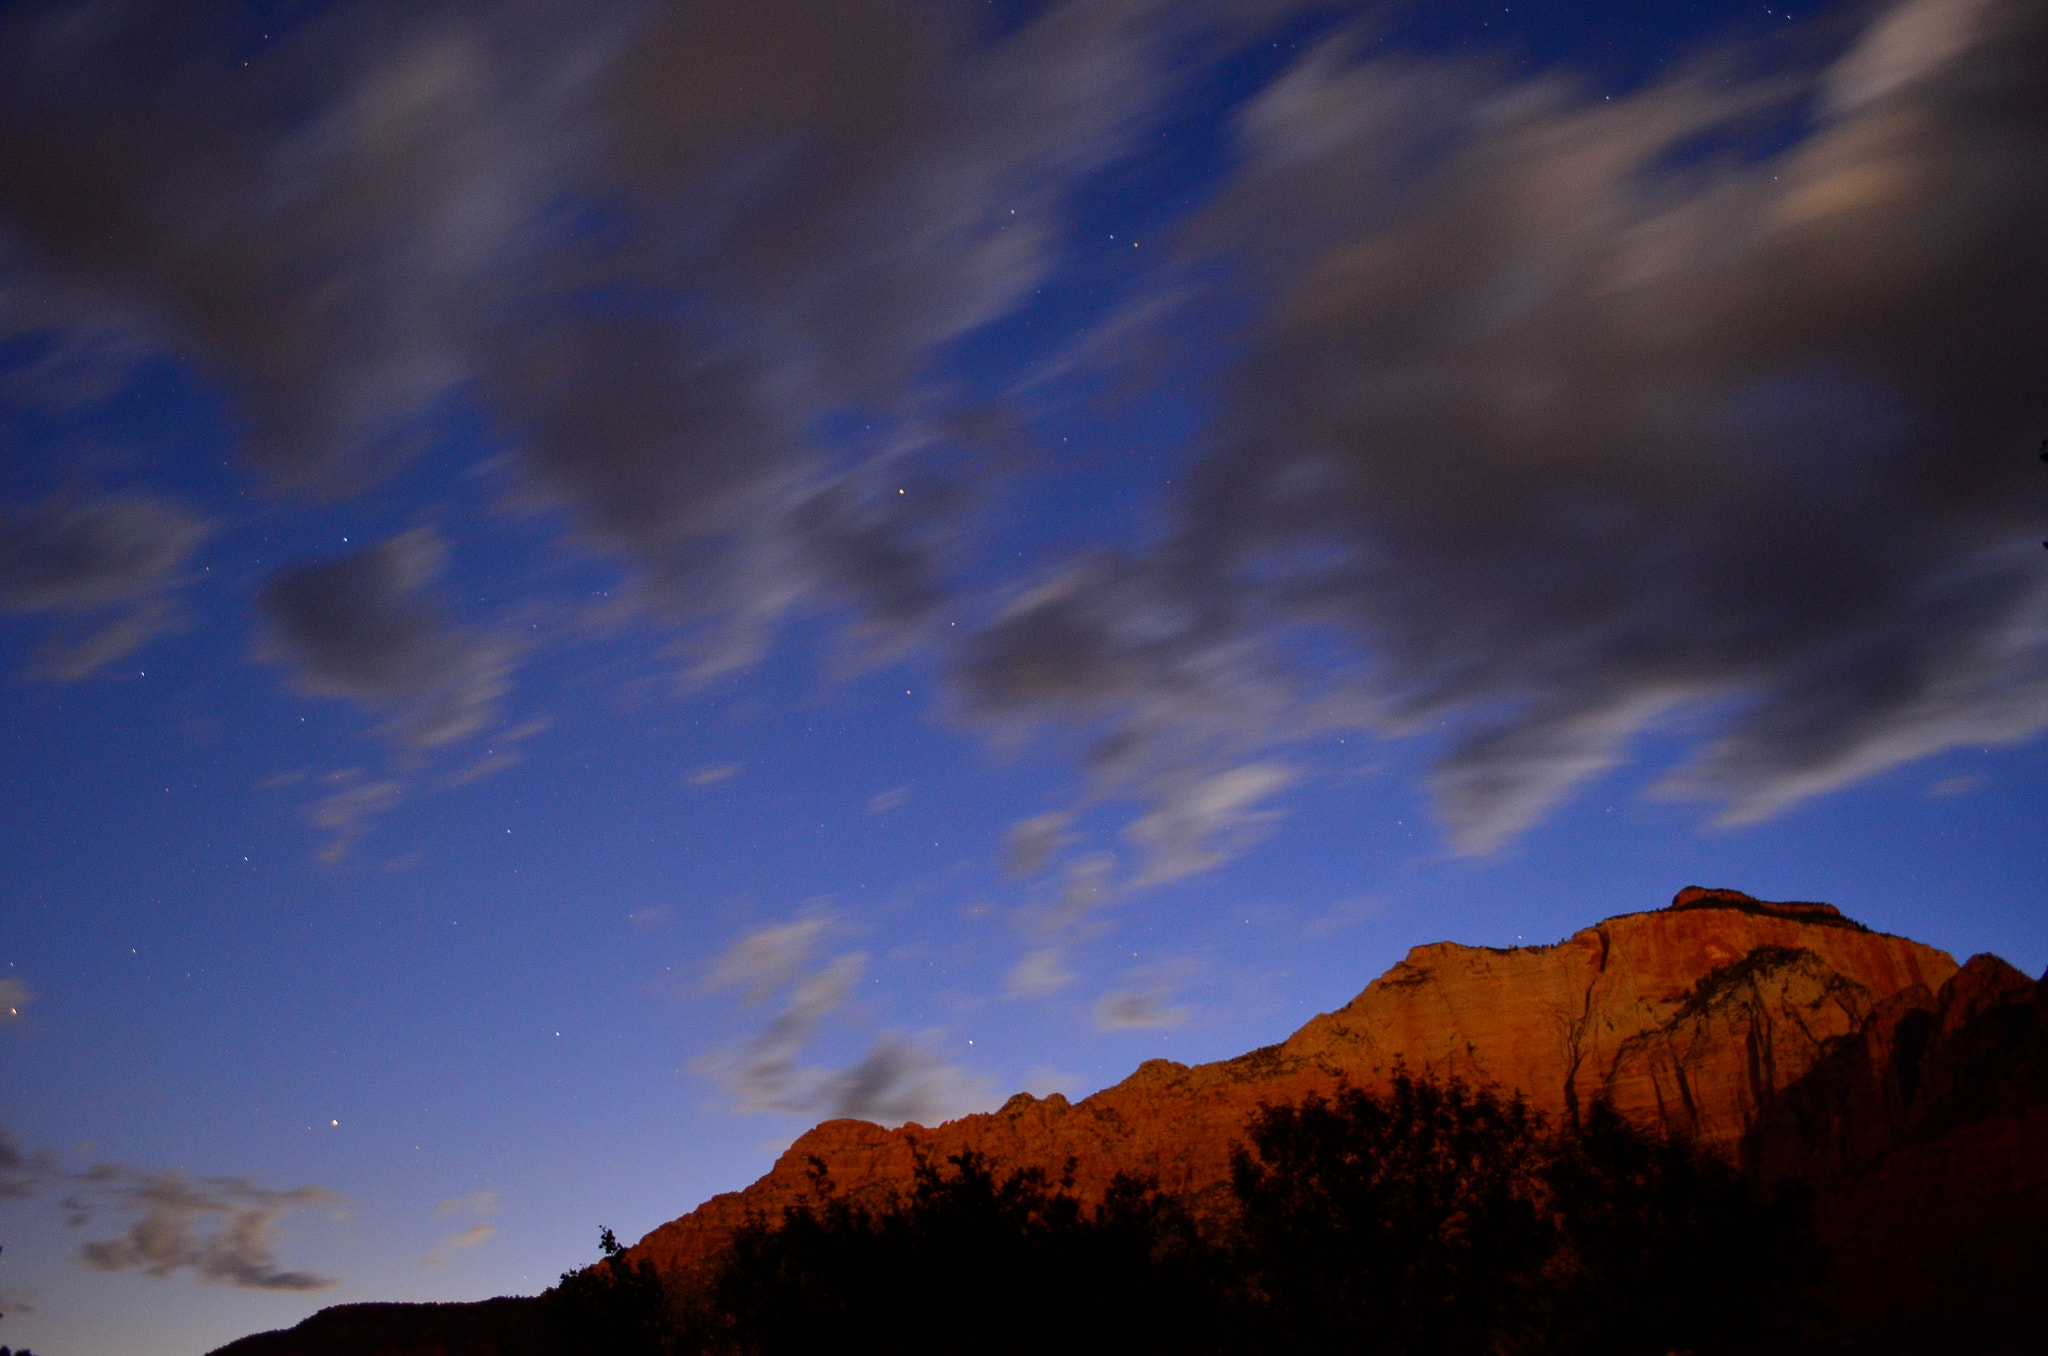 Photograph Zion at Nightfall by Clint Carter on 500px